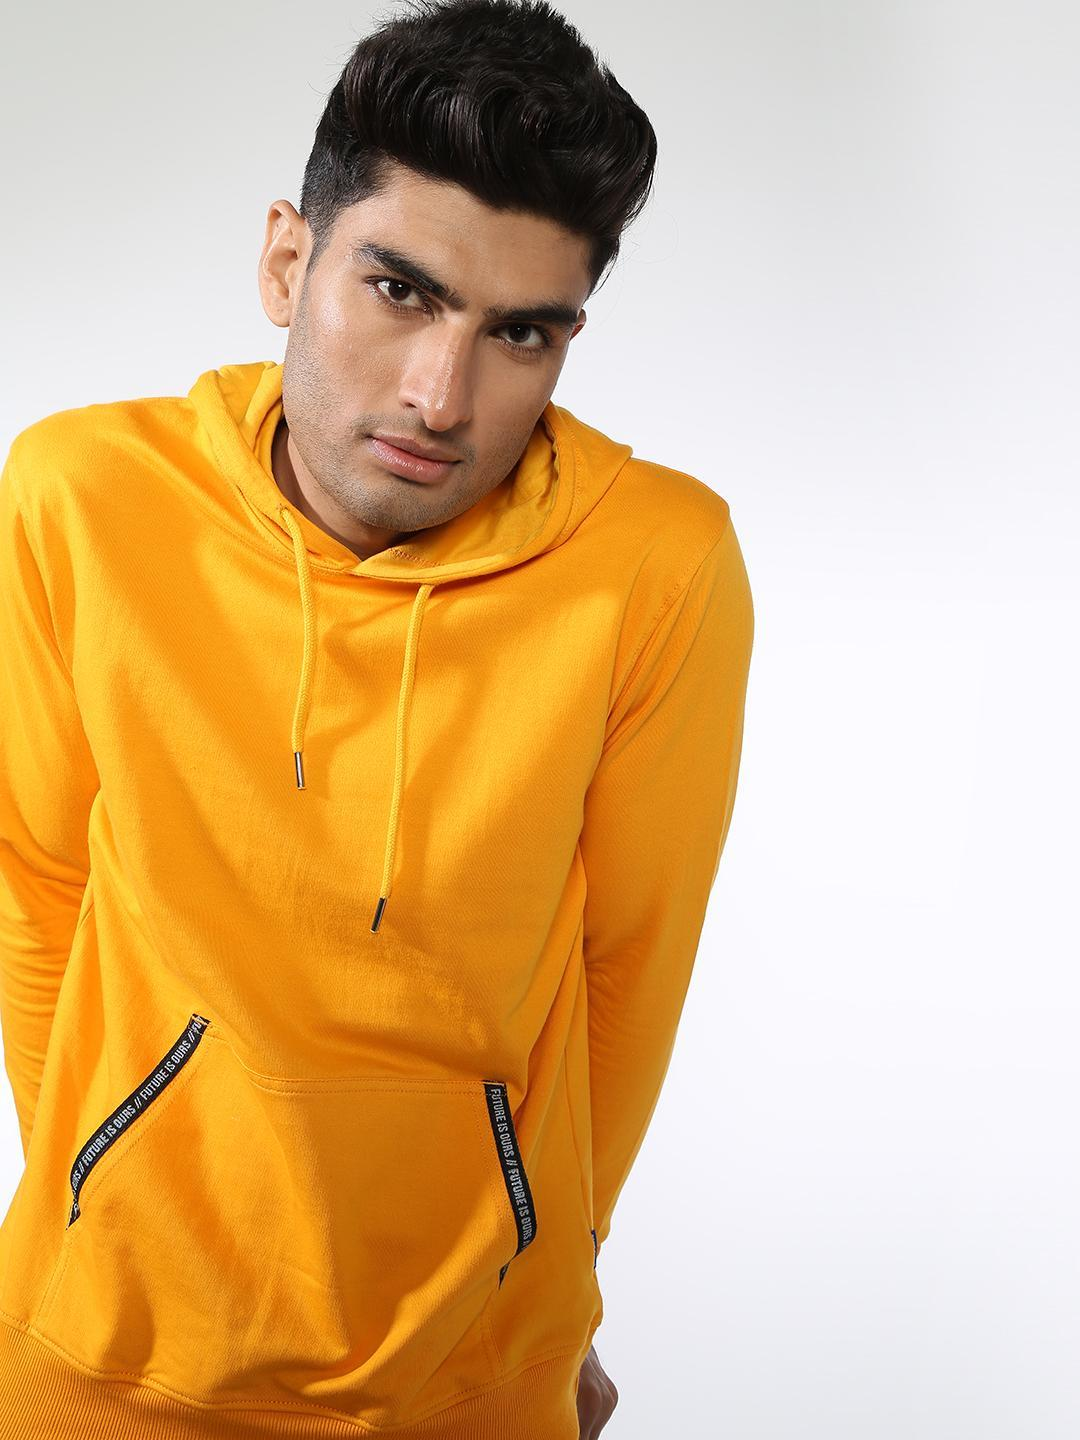 Blue Saint Yellow Hooded Regular Fit Sweatshirt 1